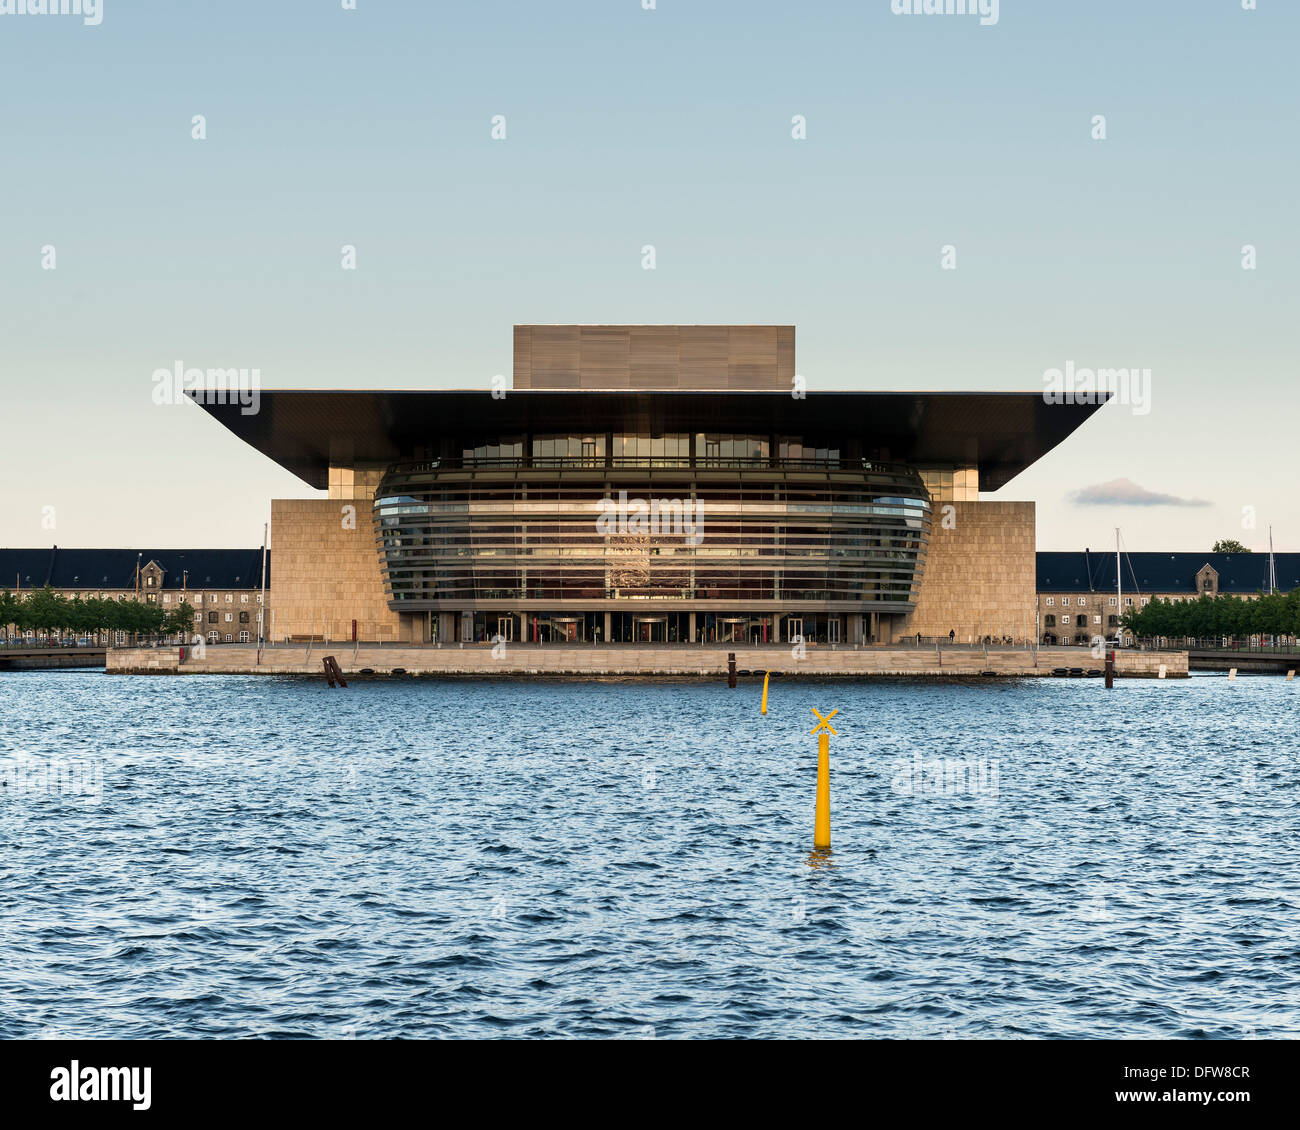 Copenhagen Opera House (Operaen), Copenhagen, Denmark. Architect: Henning Larsen, 2004. Stock Photo